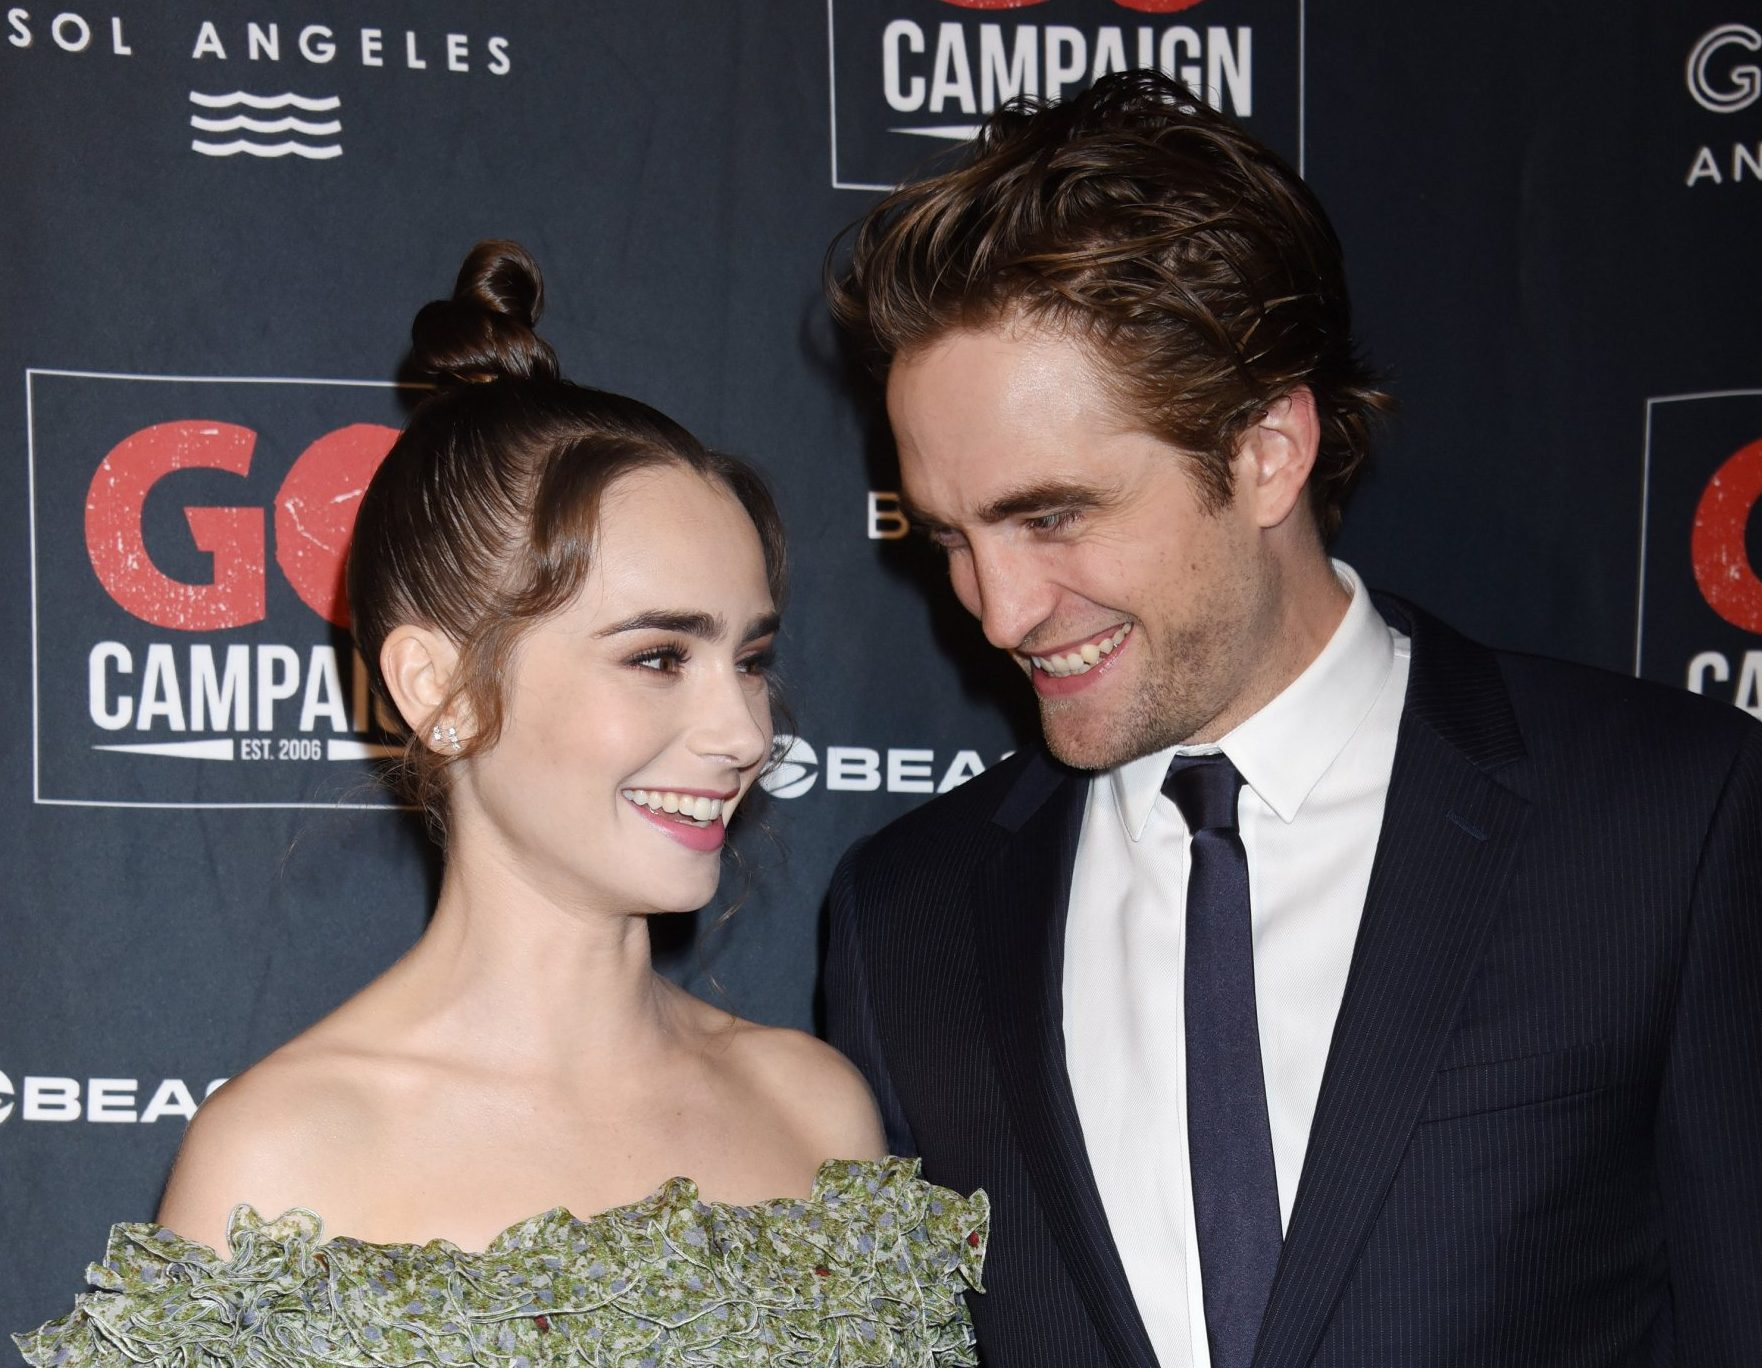 Go Campaign Gala 2018 held at City Market Social House on October 20, 2018 in Los Angeles, CA. 20 Oct 2018 Pictured: Lily Collins and Robert Pattinson. Photo credit: Janet Gough / AFF-USA.com / MEGA TheMegaAgency.com +1 888 505 6342